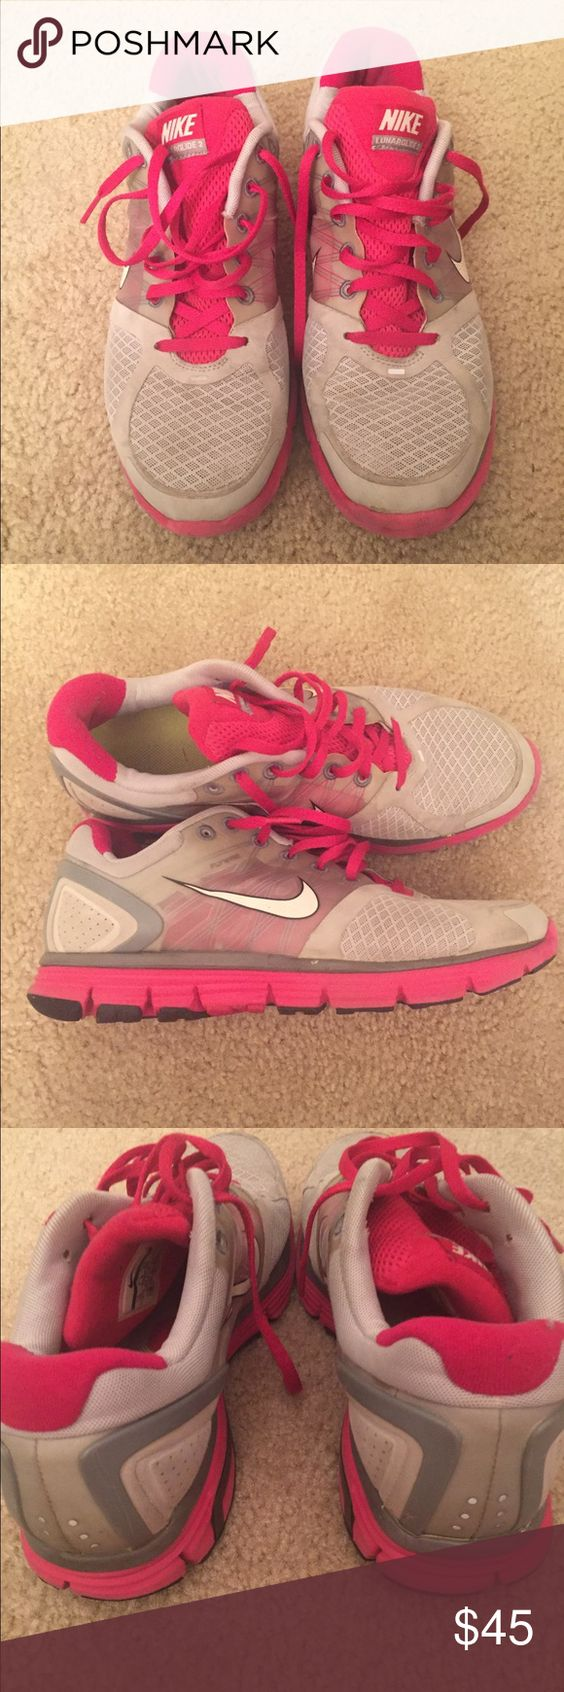 Women's Nikes Pink and light gray Nike lunarglide 2 running sneakers! Size 10! Nike Shoes Athletic Shoes